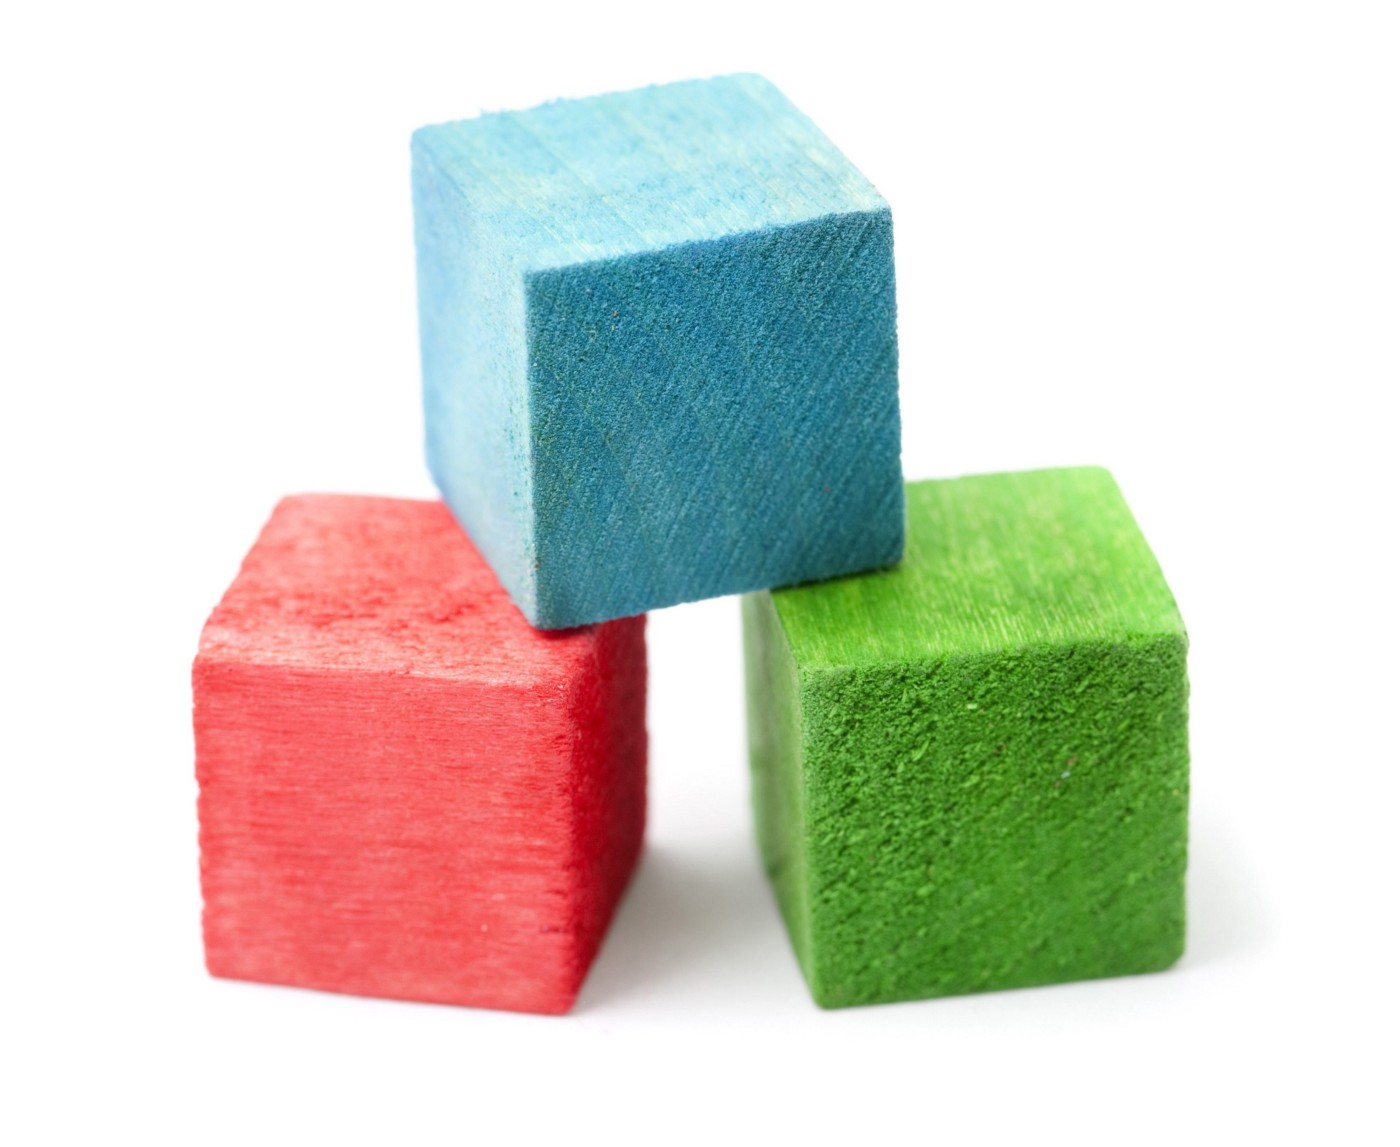 A set of wooden building blocks in bright colours